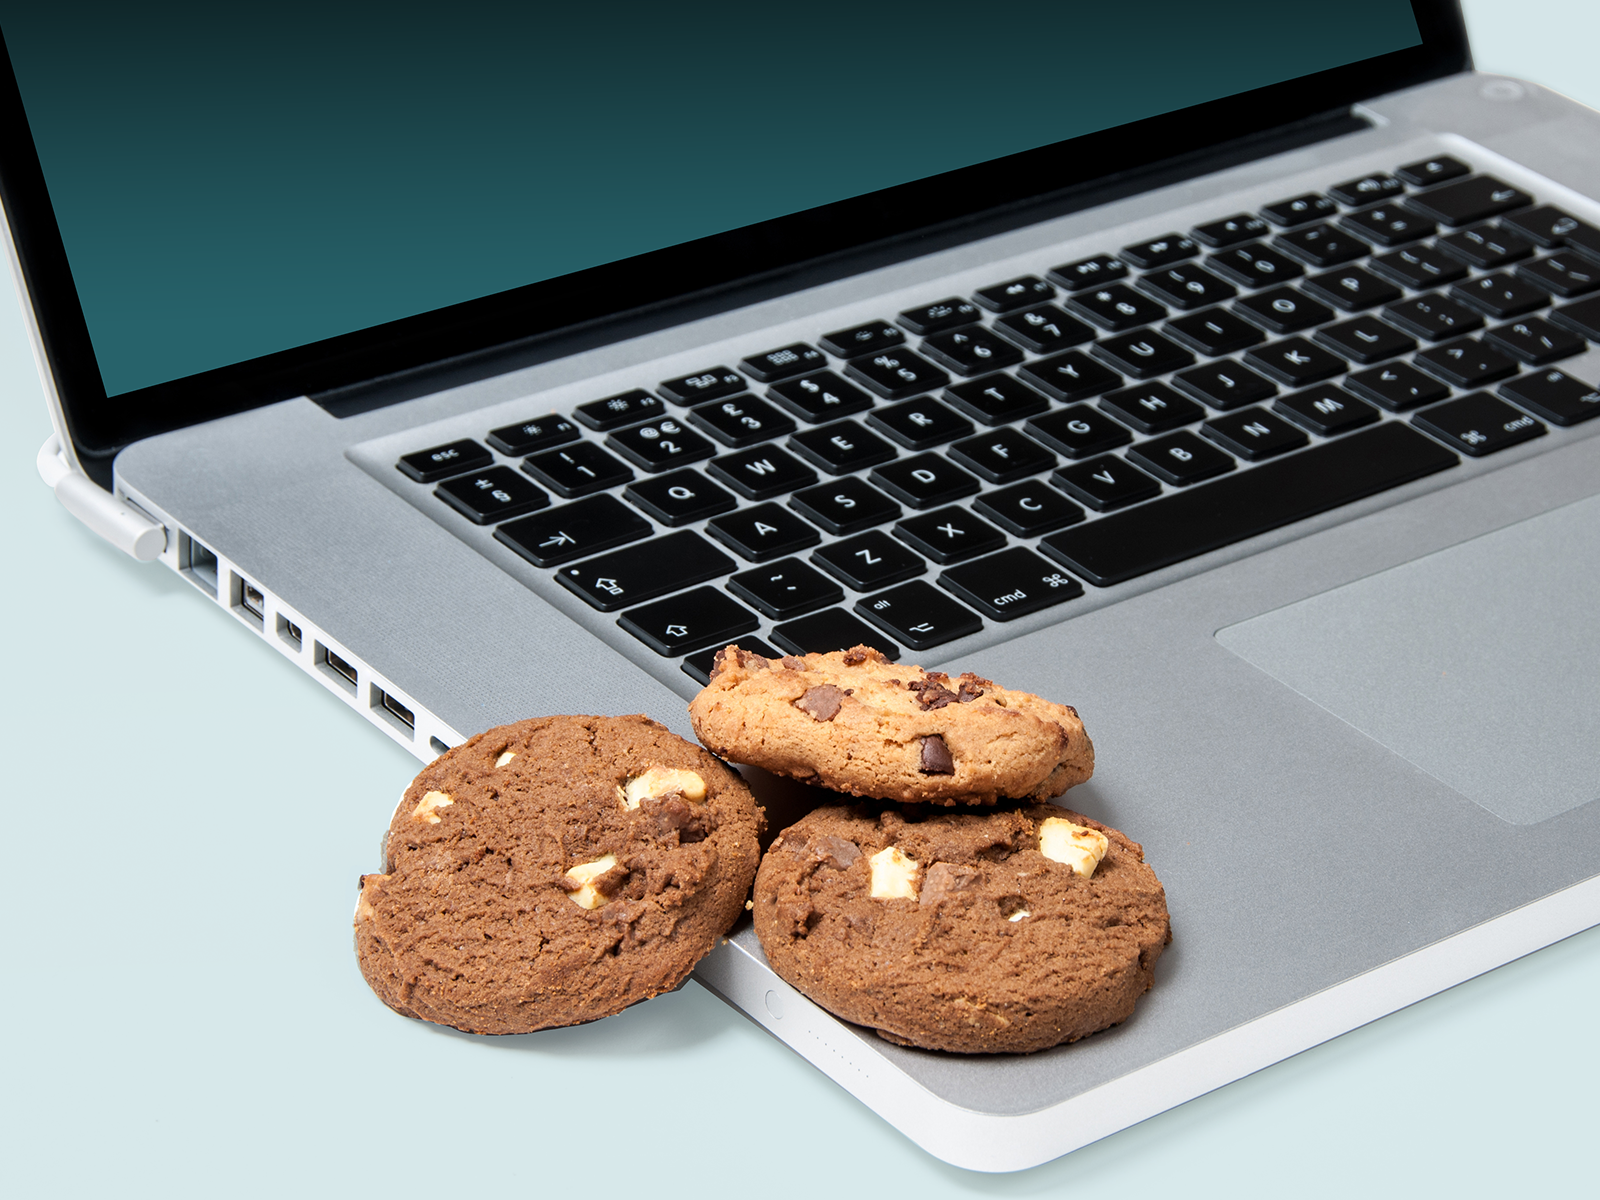 Delivering connectivity without third-party cookies